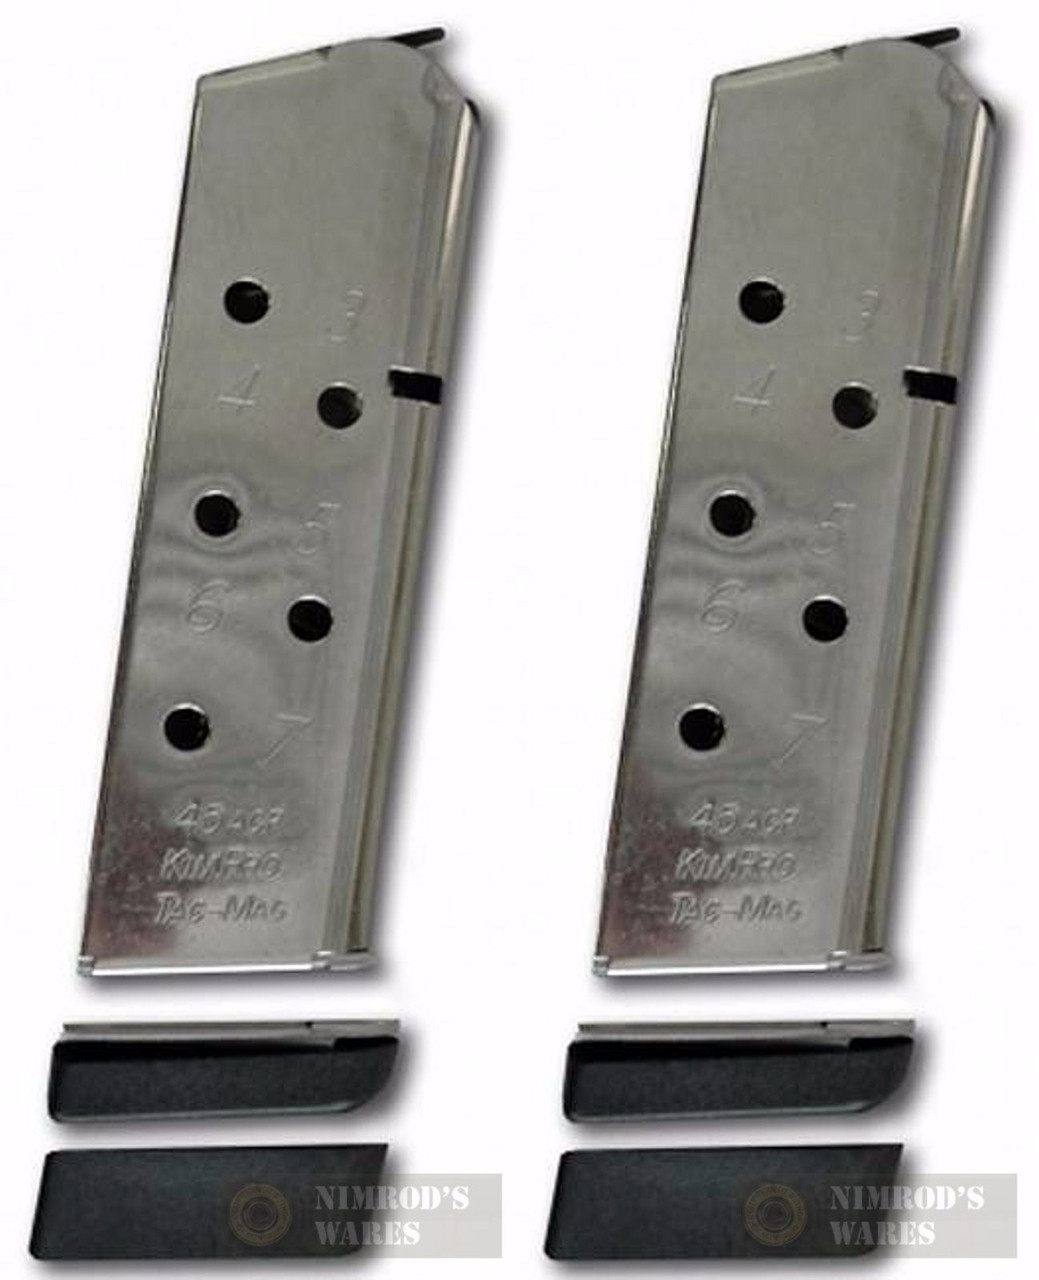 KIMBER KimPro 1911 Compact 45ACP 7 Round Magazine 2-PACK 1100813A